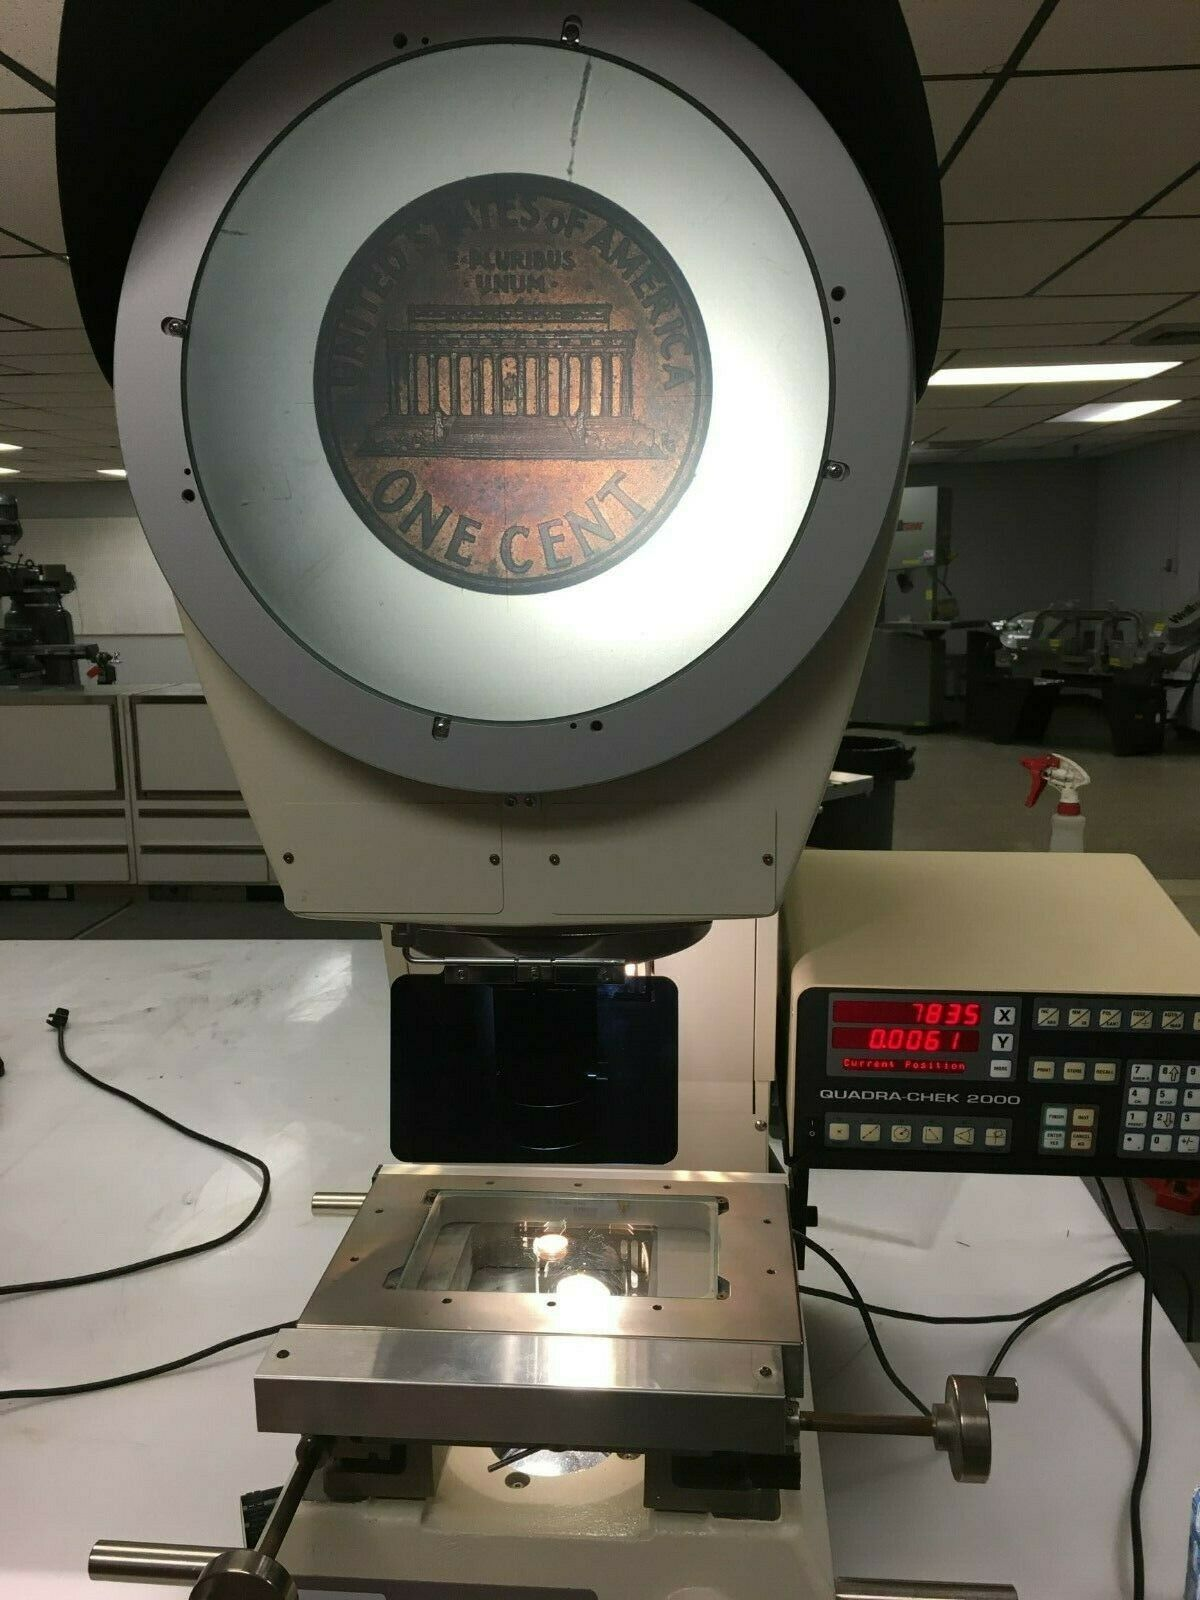 "12"" Nikon Model V-12BS Bench Top Comparator / Profile Projector, S/N 1300348."